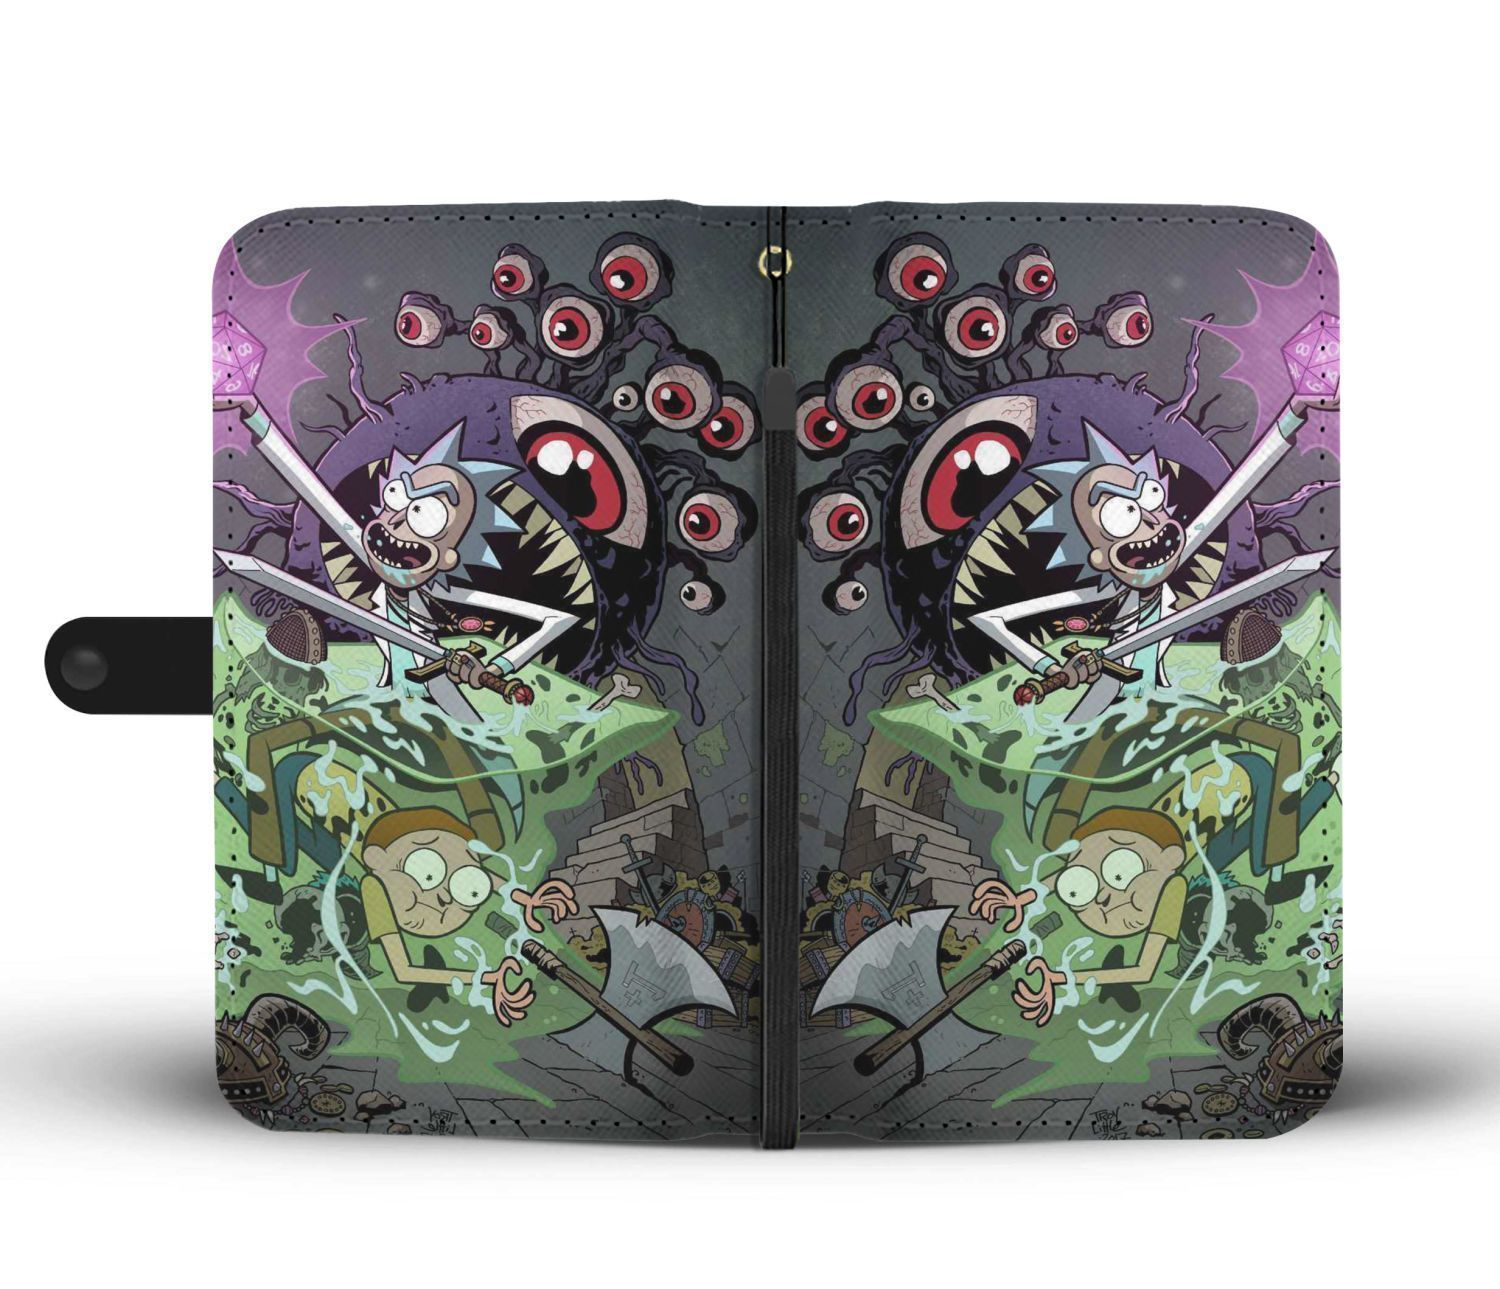 cbd439f4 Rick And Morty With Dungeons And Dragons Wallet Phone Cases ...